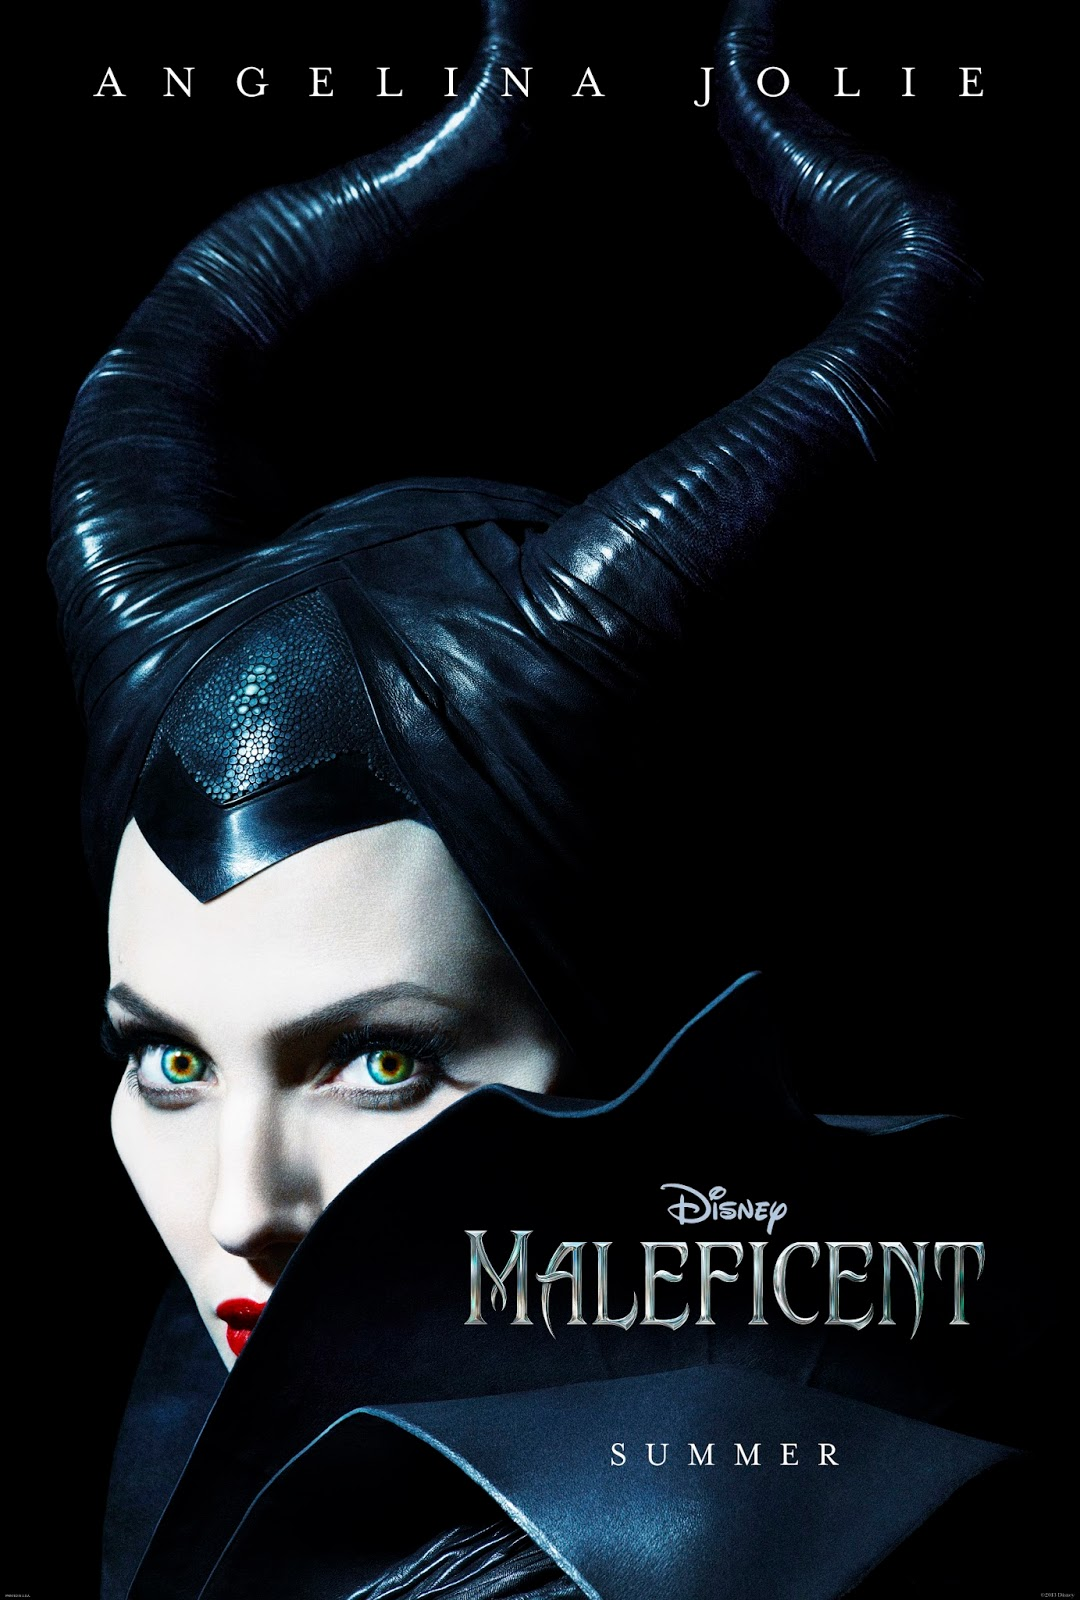 A New Dawnn Disneys MALEFICENT In Theaters May 30 2014